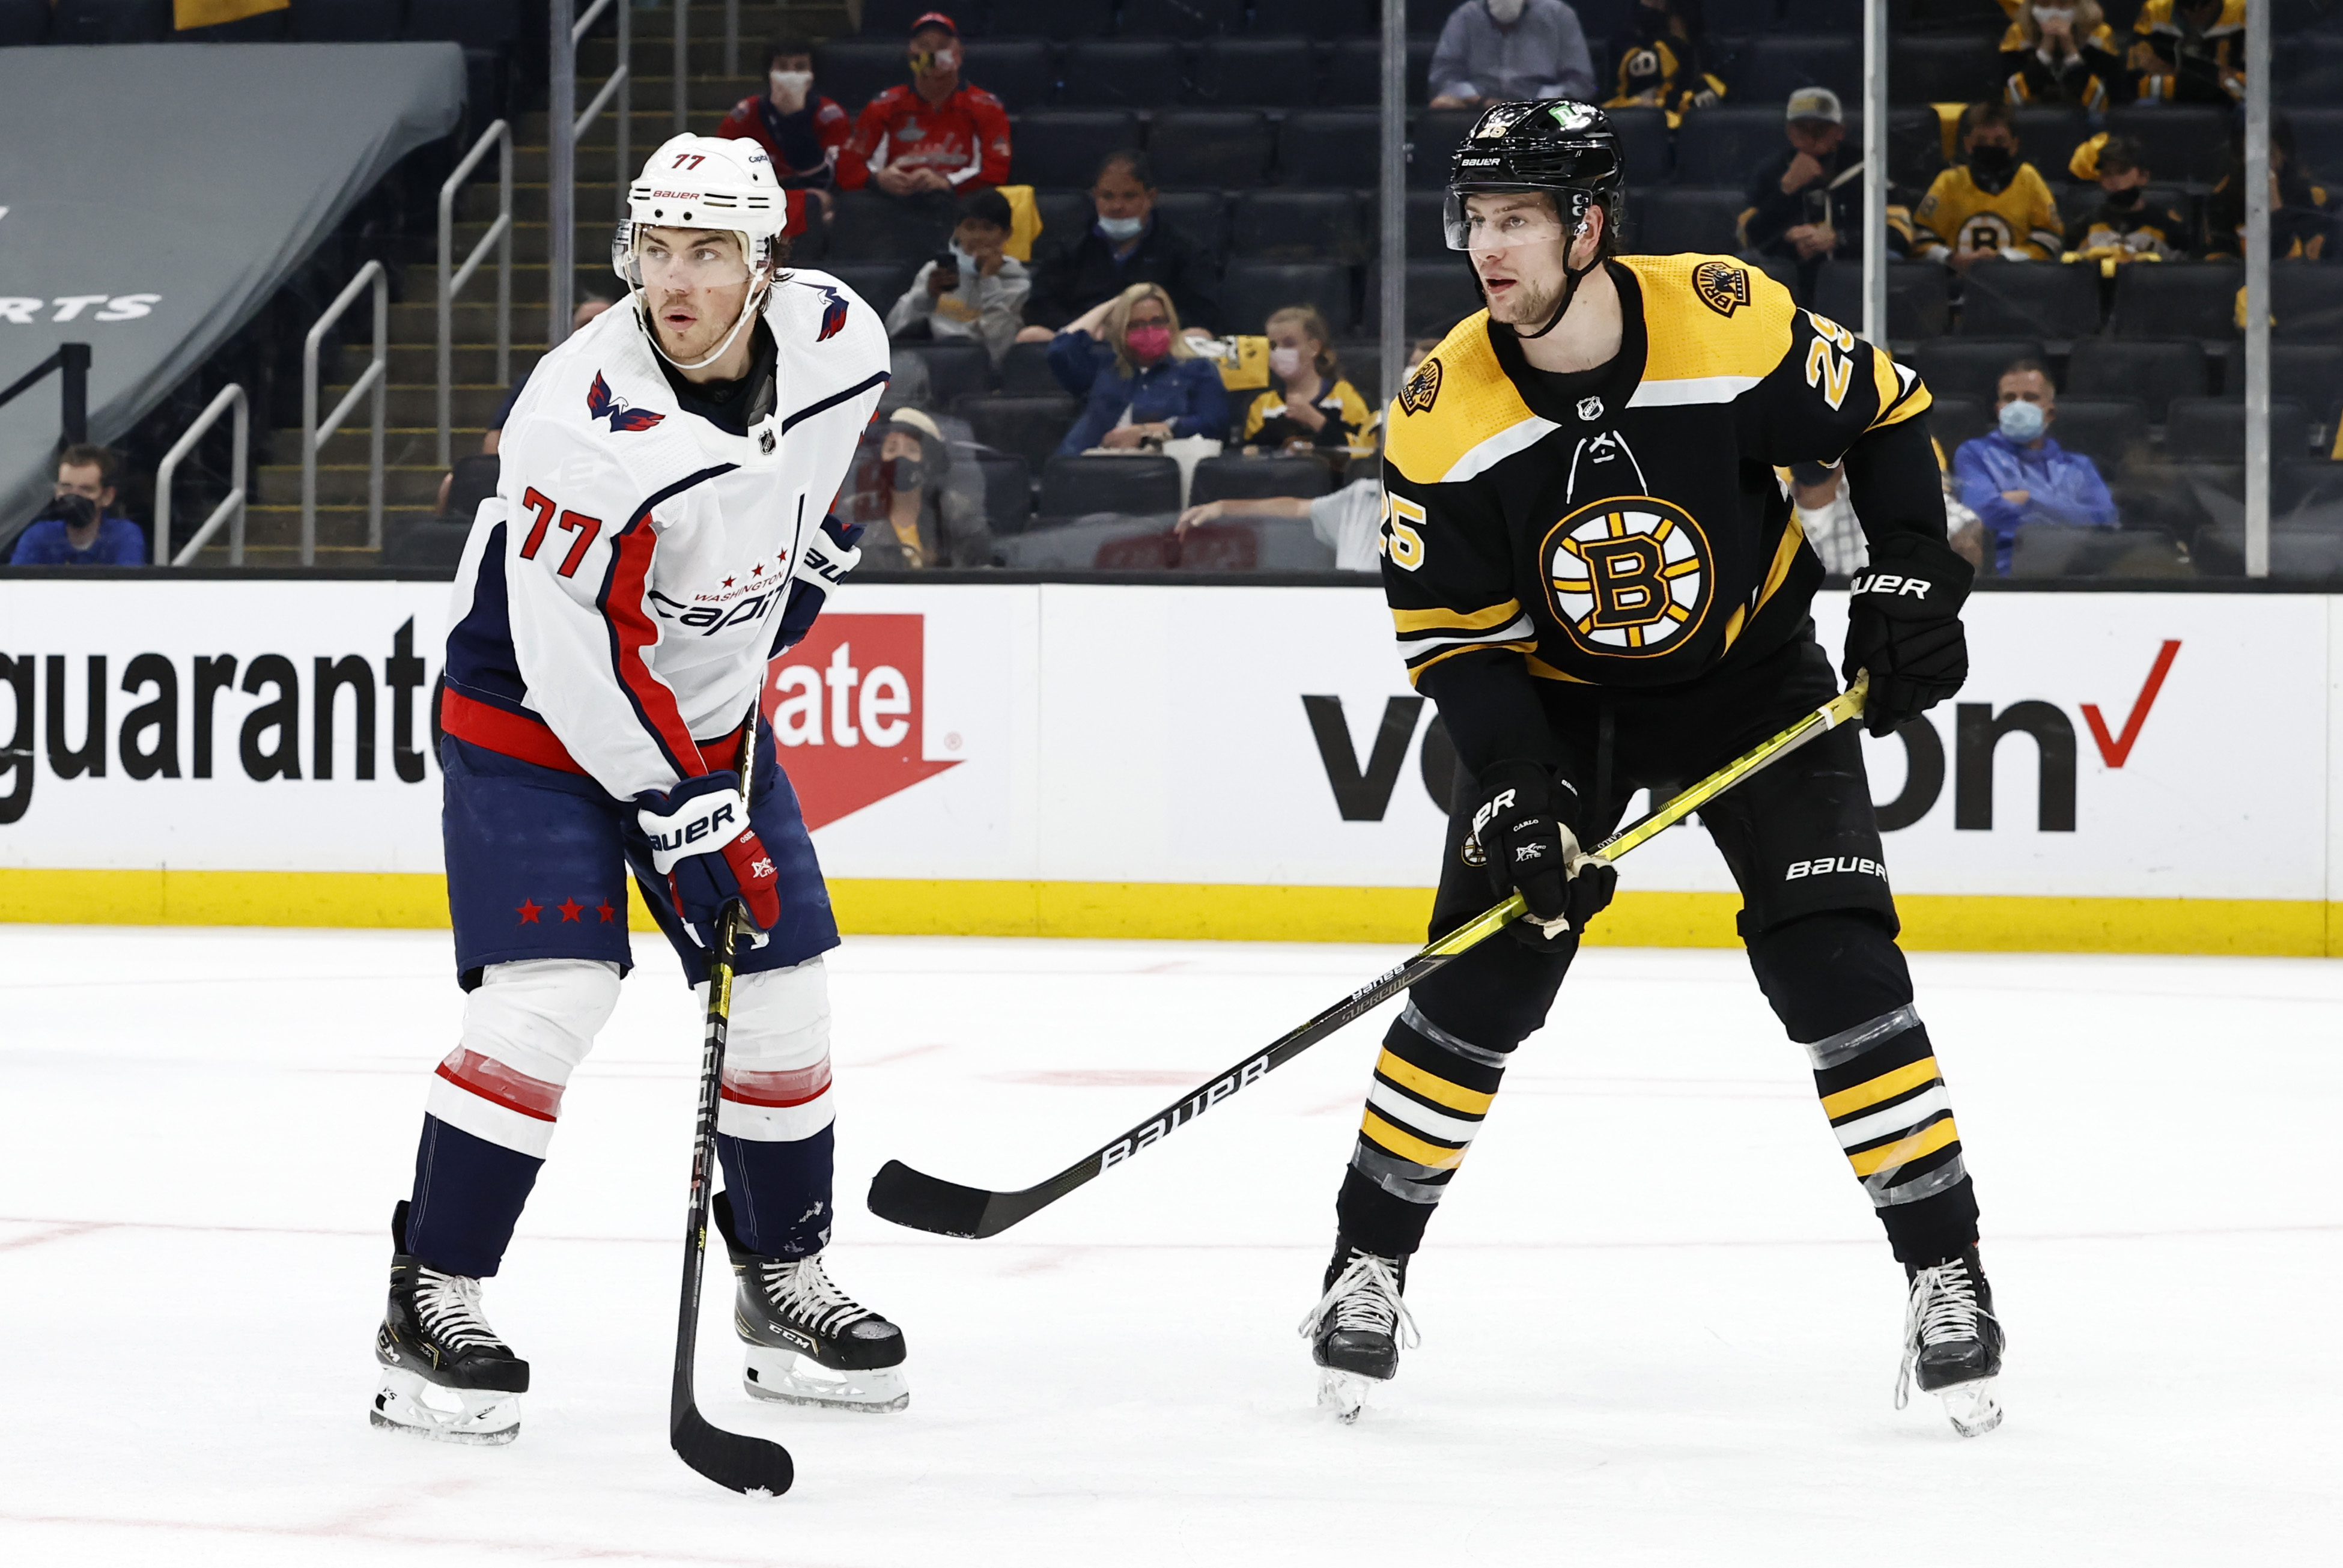 NHL: MAY 21 Stanley Cup Playoffs First Round - Capitals at Bruins